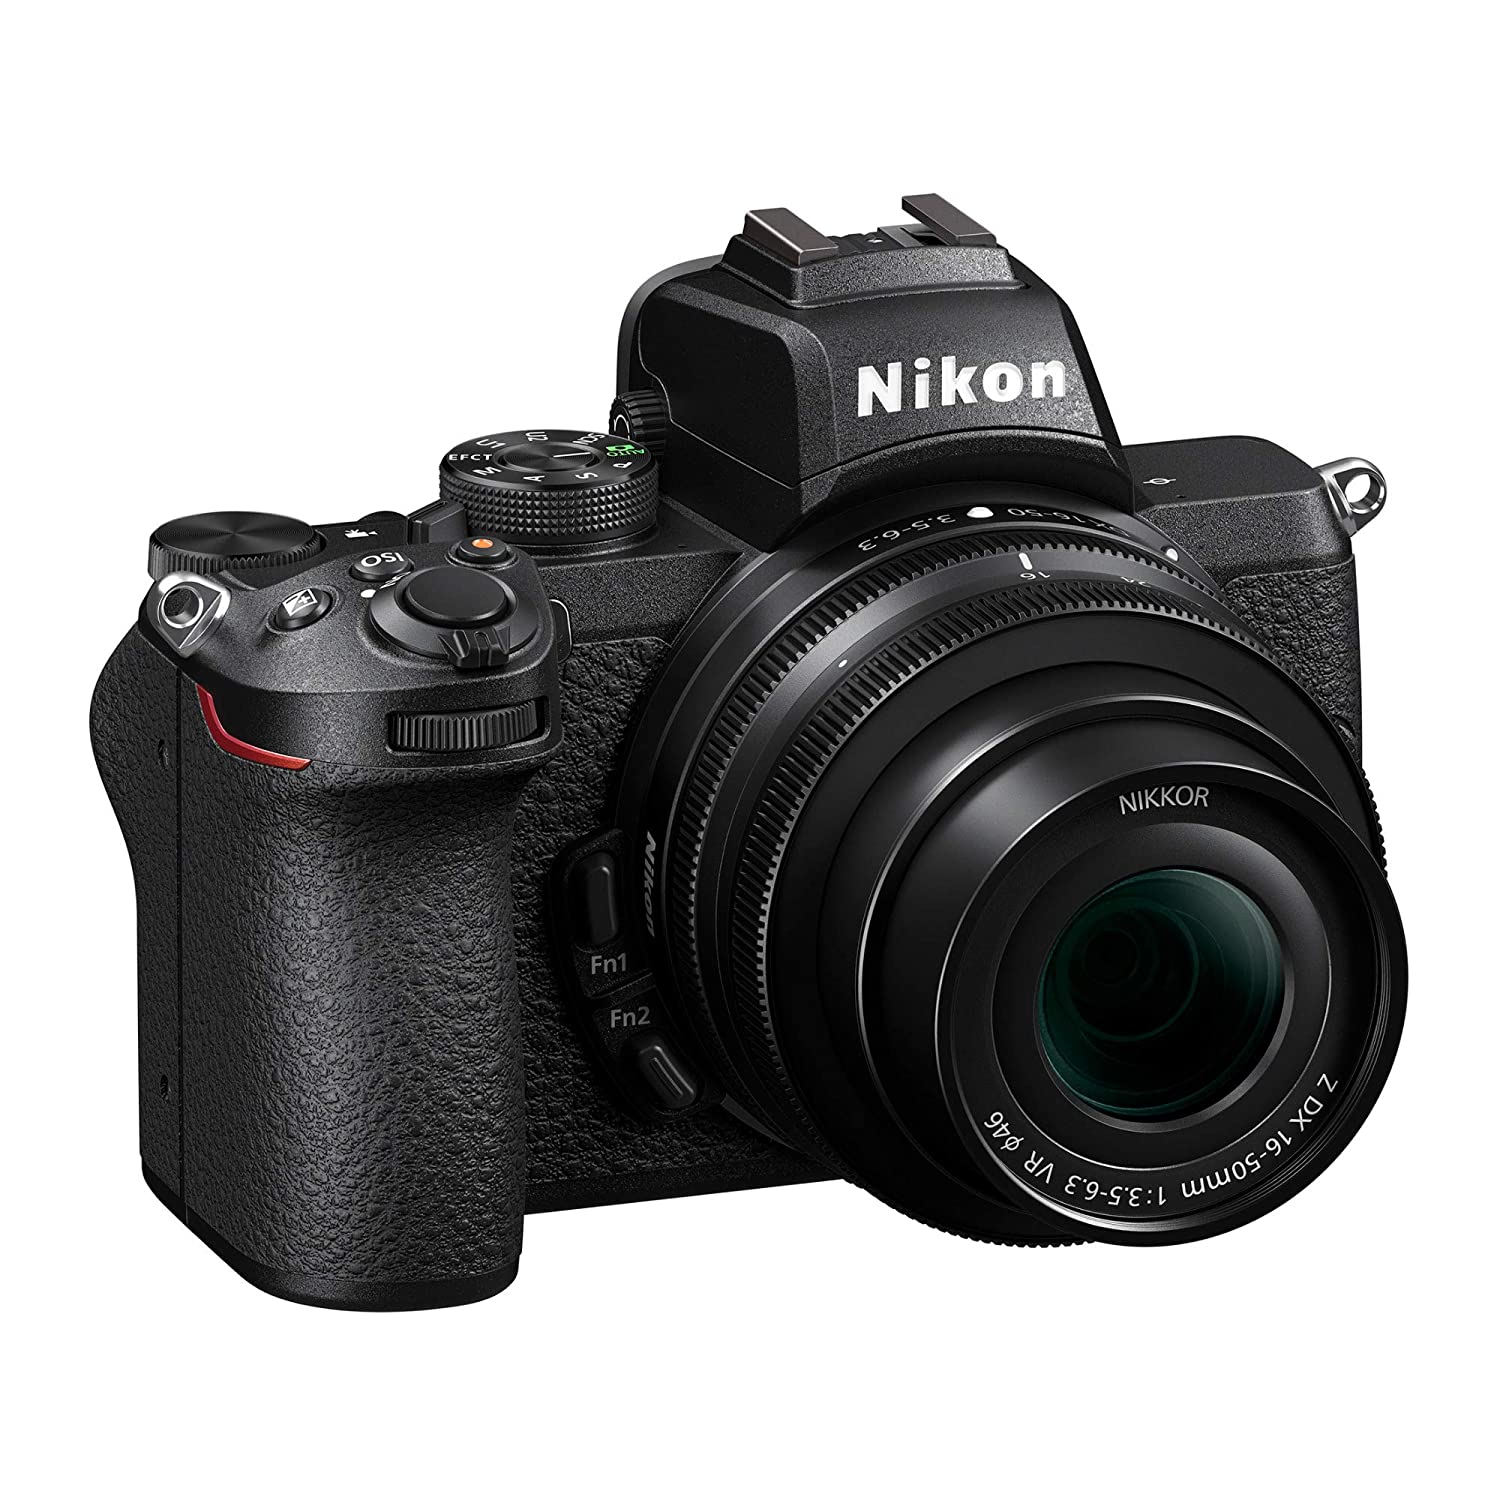 Nikon Mount Adapter 64GB Card and Accessory Bundle Nikon Z 50 DX-Format Mirrorless Camera with NIKKOR Z 16-50mm Lens 3 Items